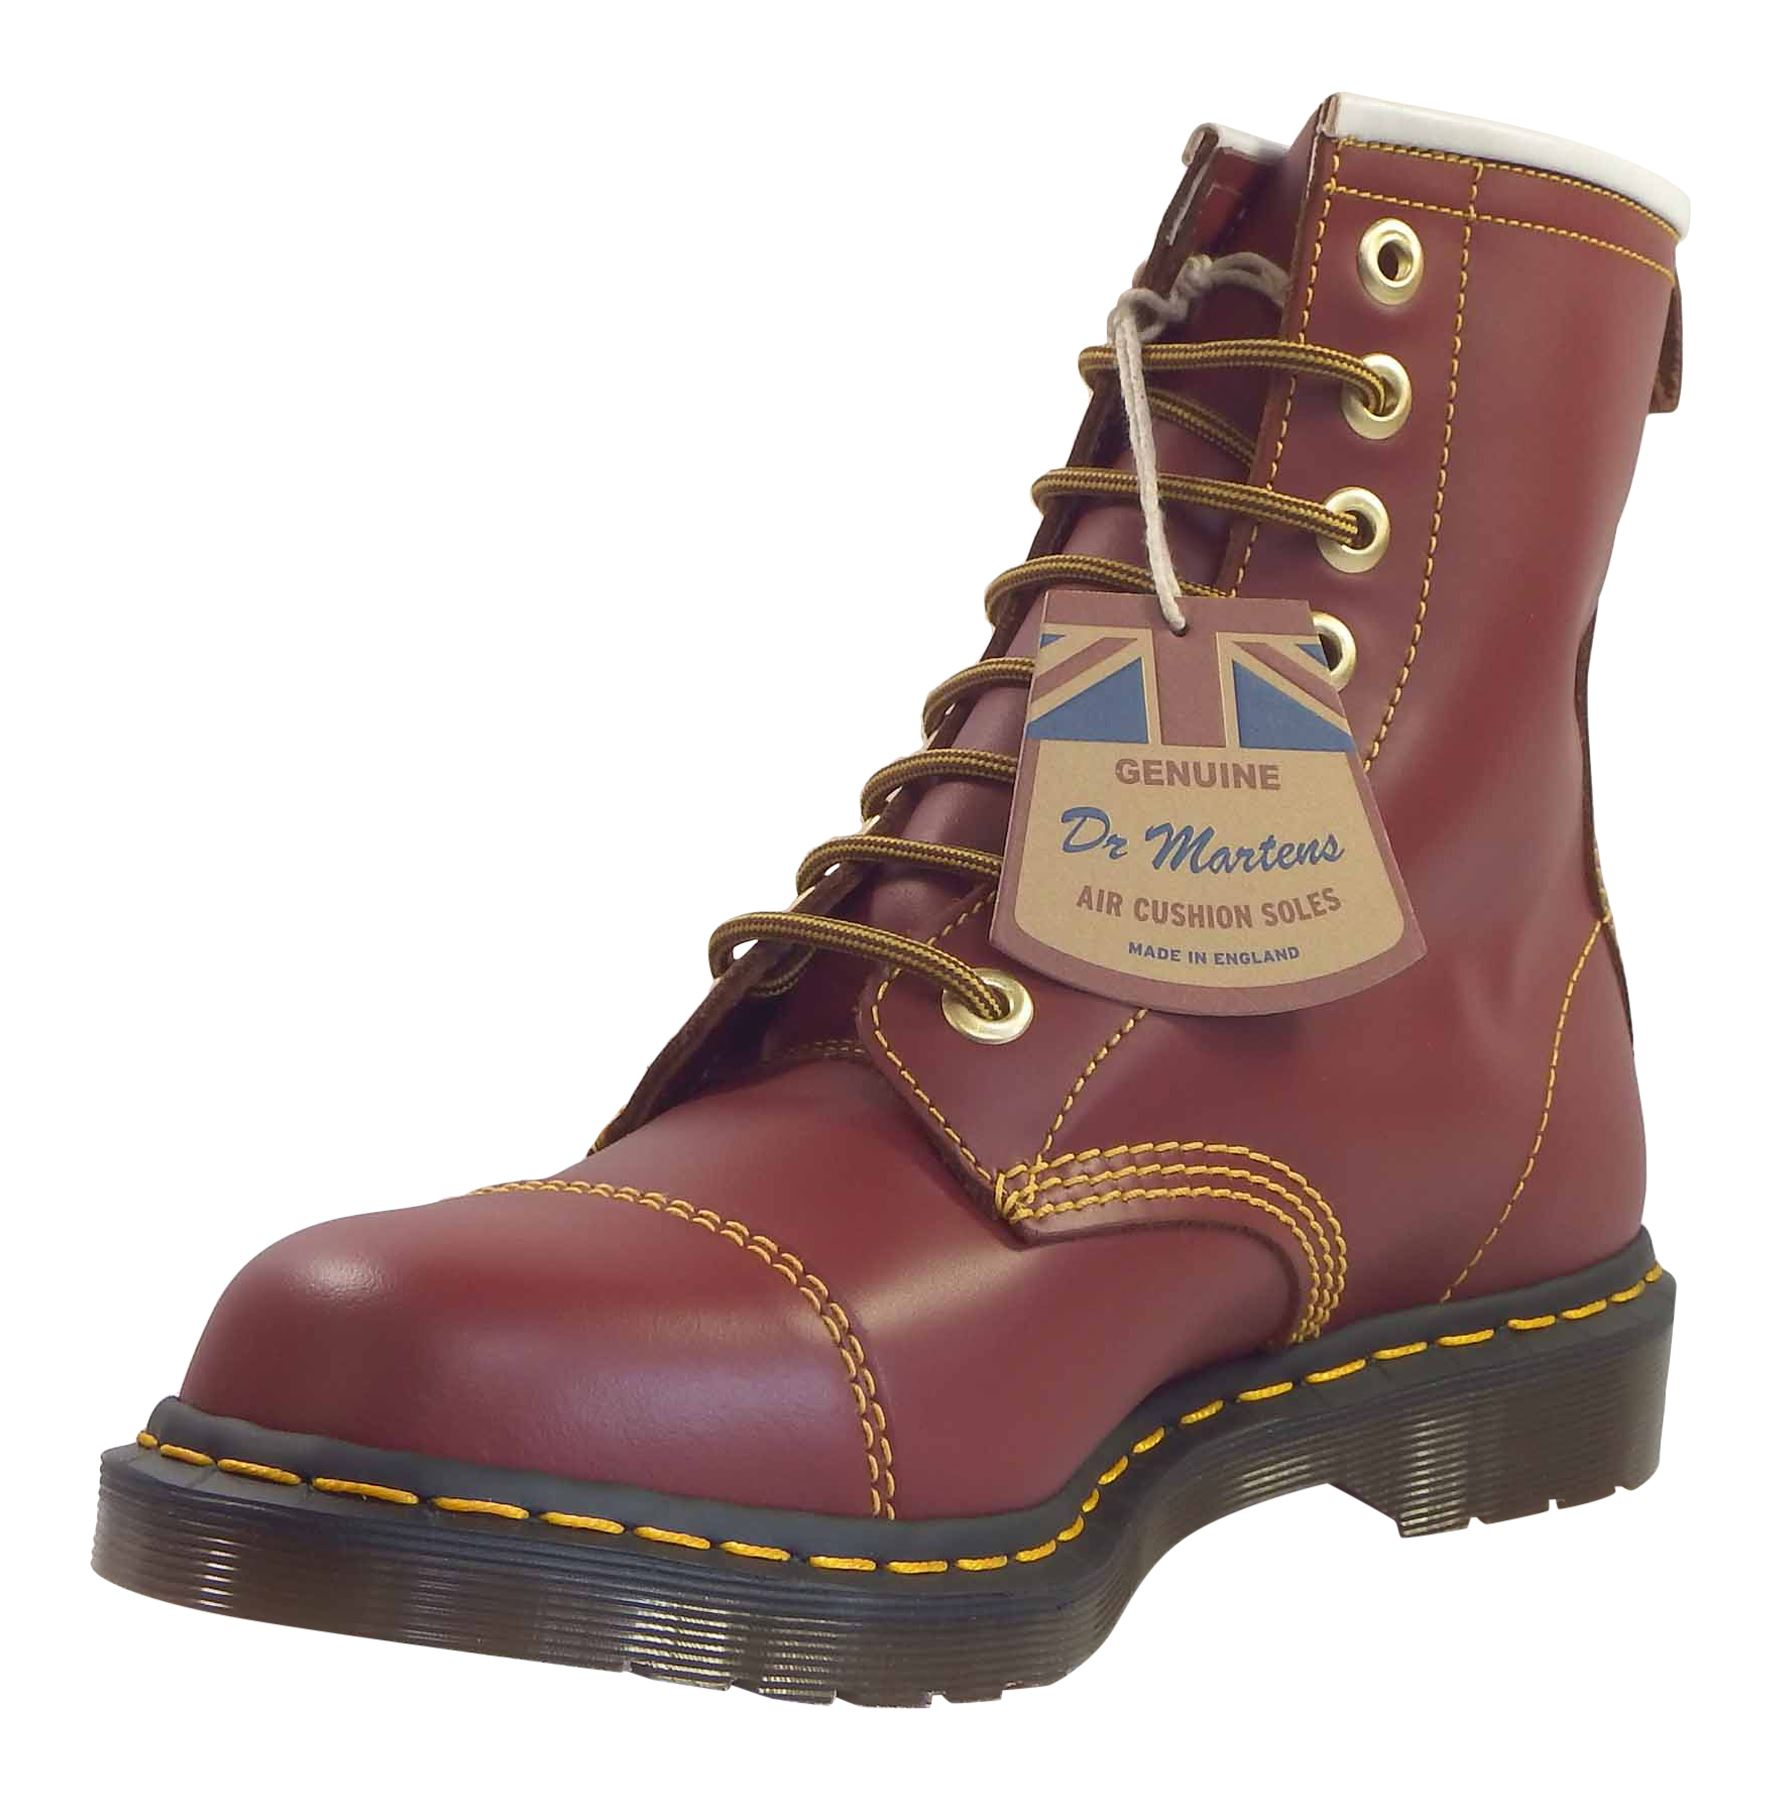 Grandes zapatos con descuento Dr Martens Unisex Capper Made In England Leather 8 Eye Ankle Boots